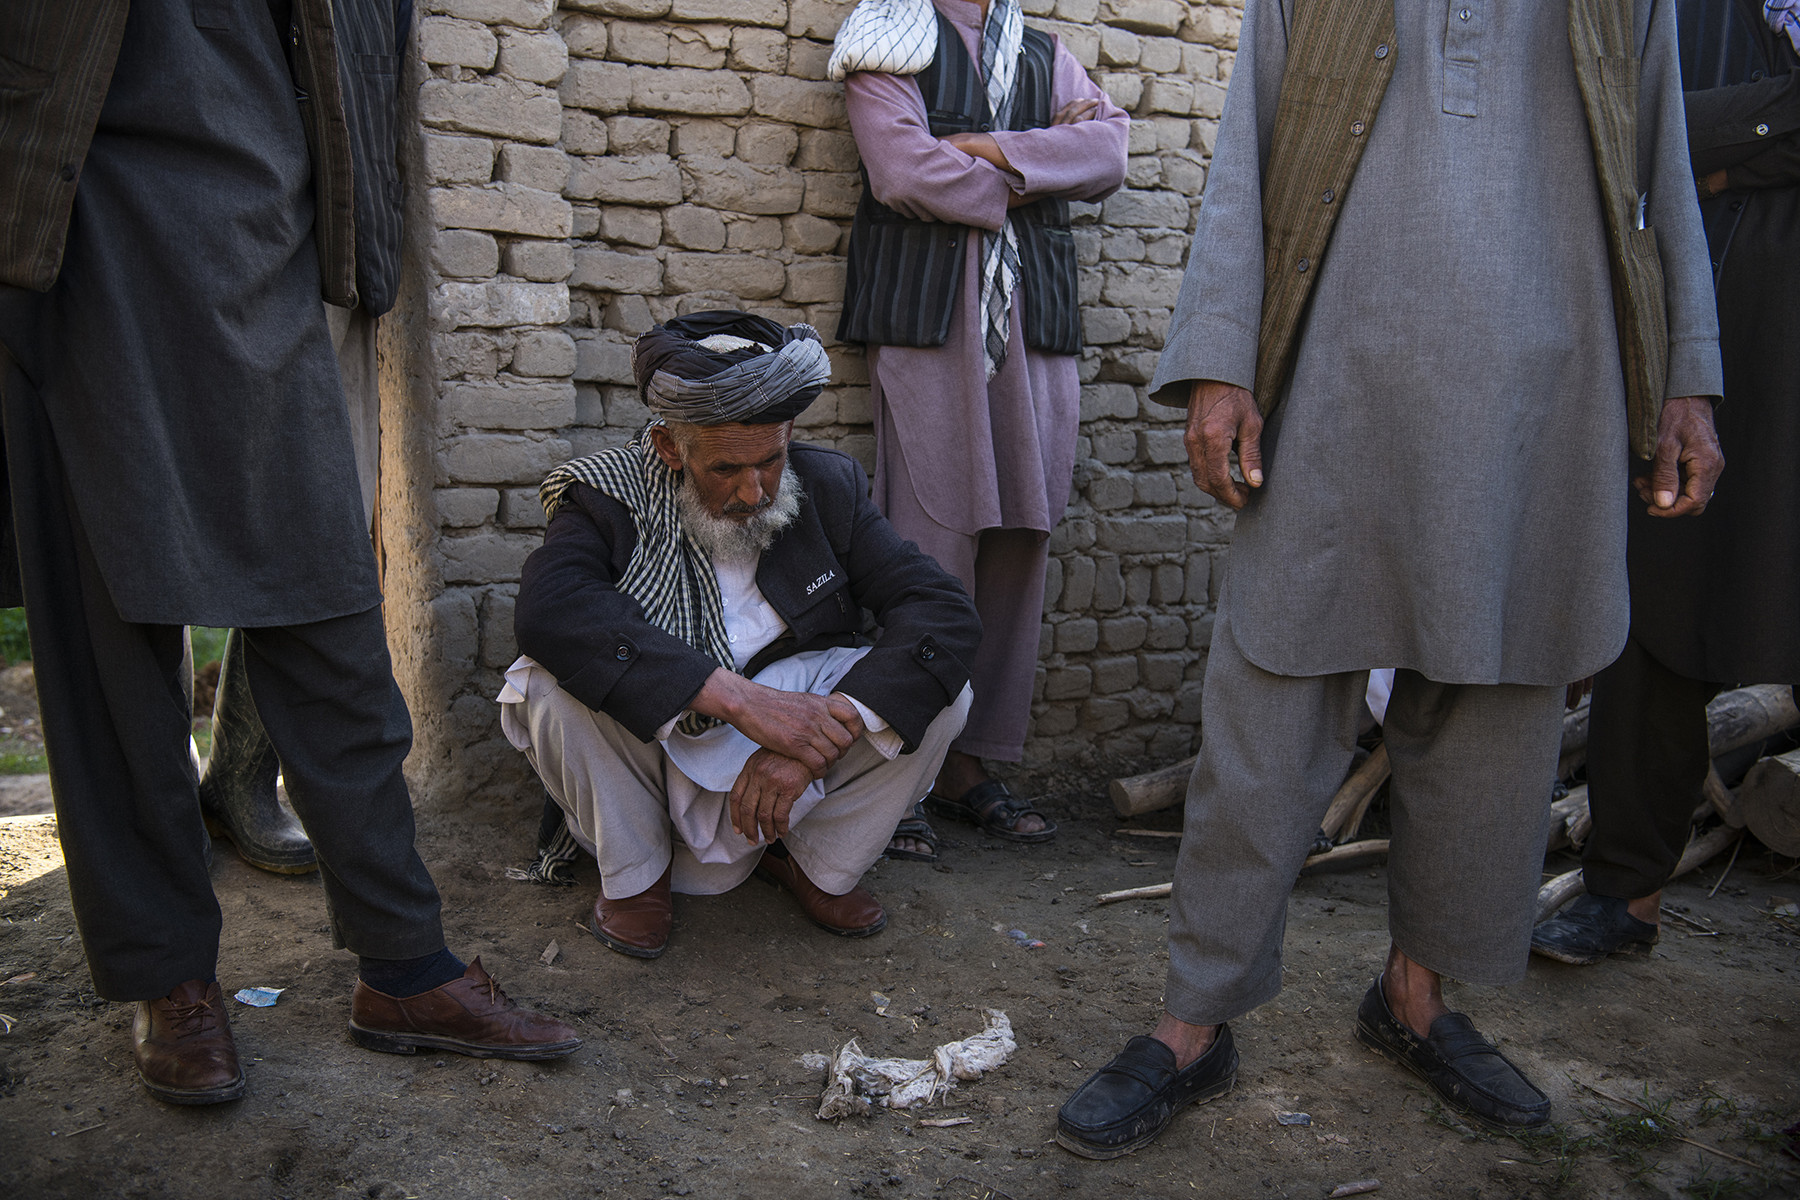 Juma Khan gathers with neighbors on March 31 at the site of what appears to be a U.S. airstrike in which 13 members of an extended family, including his daughter, son-in-law, and numerous grandchildren, were killed in the village of Aqulabul, near Telawka, north of Kunduz, Afghanistan, on March 22. ANDREW QUILTY FOR FOREIGN POLICY